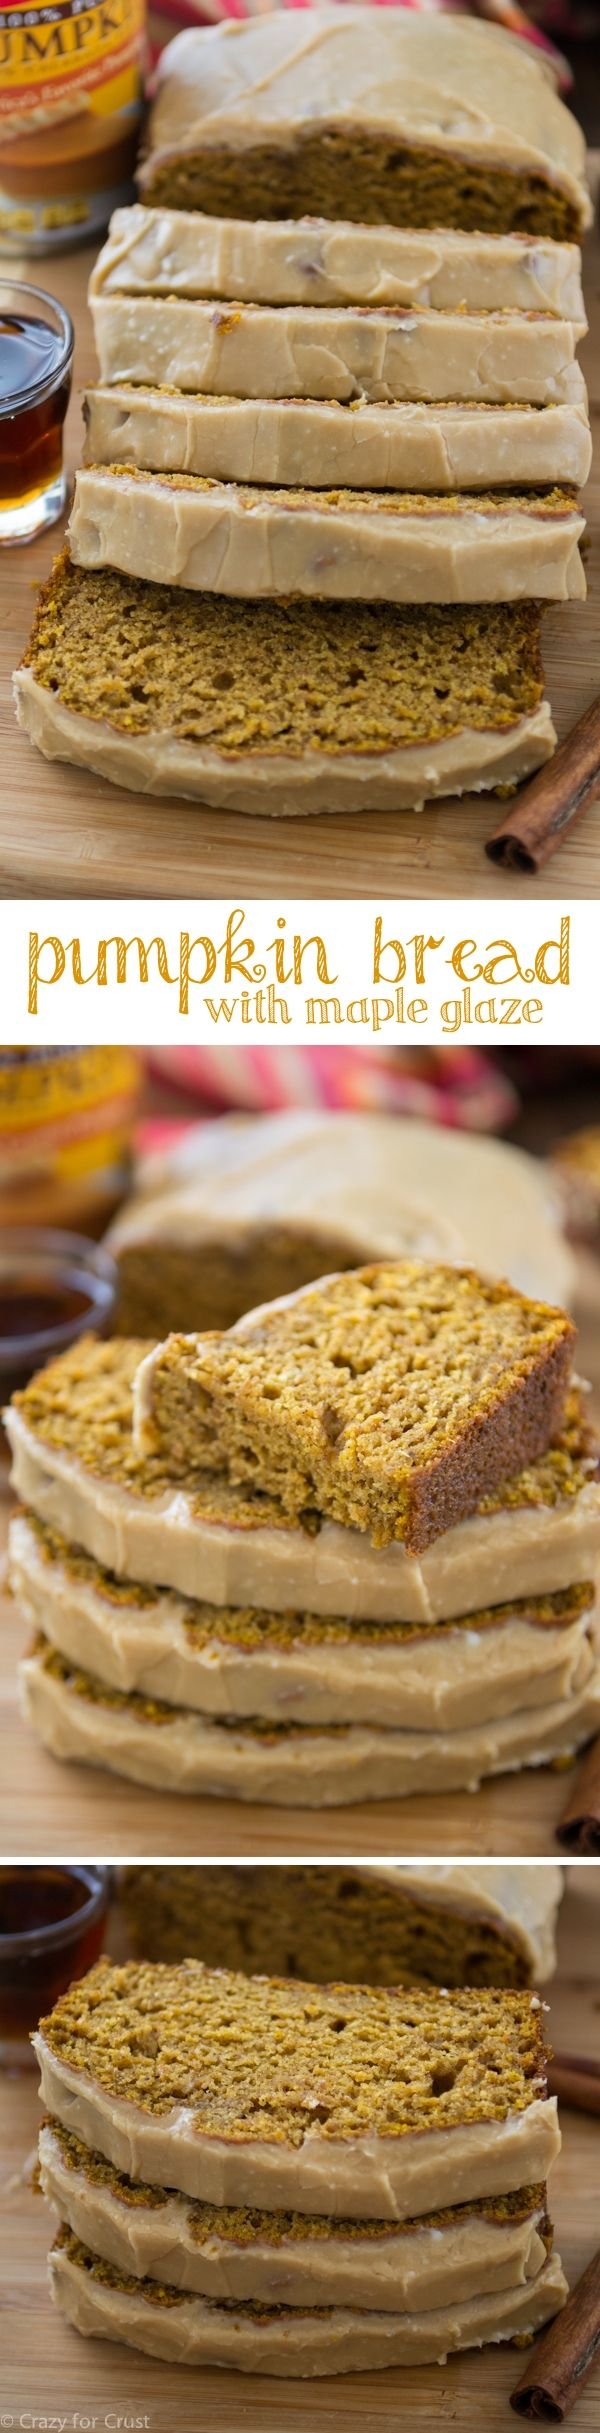 This Pumpkin Bread with Maple Glaze is soft and moist and the perfect pumpkin bread recipe!